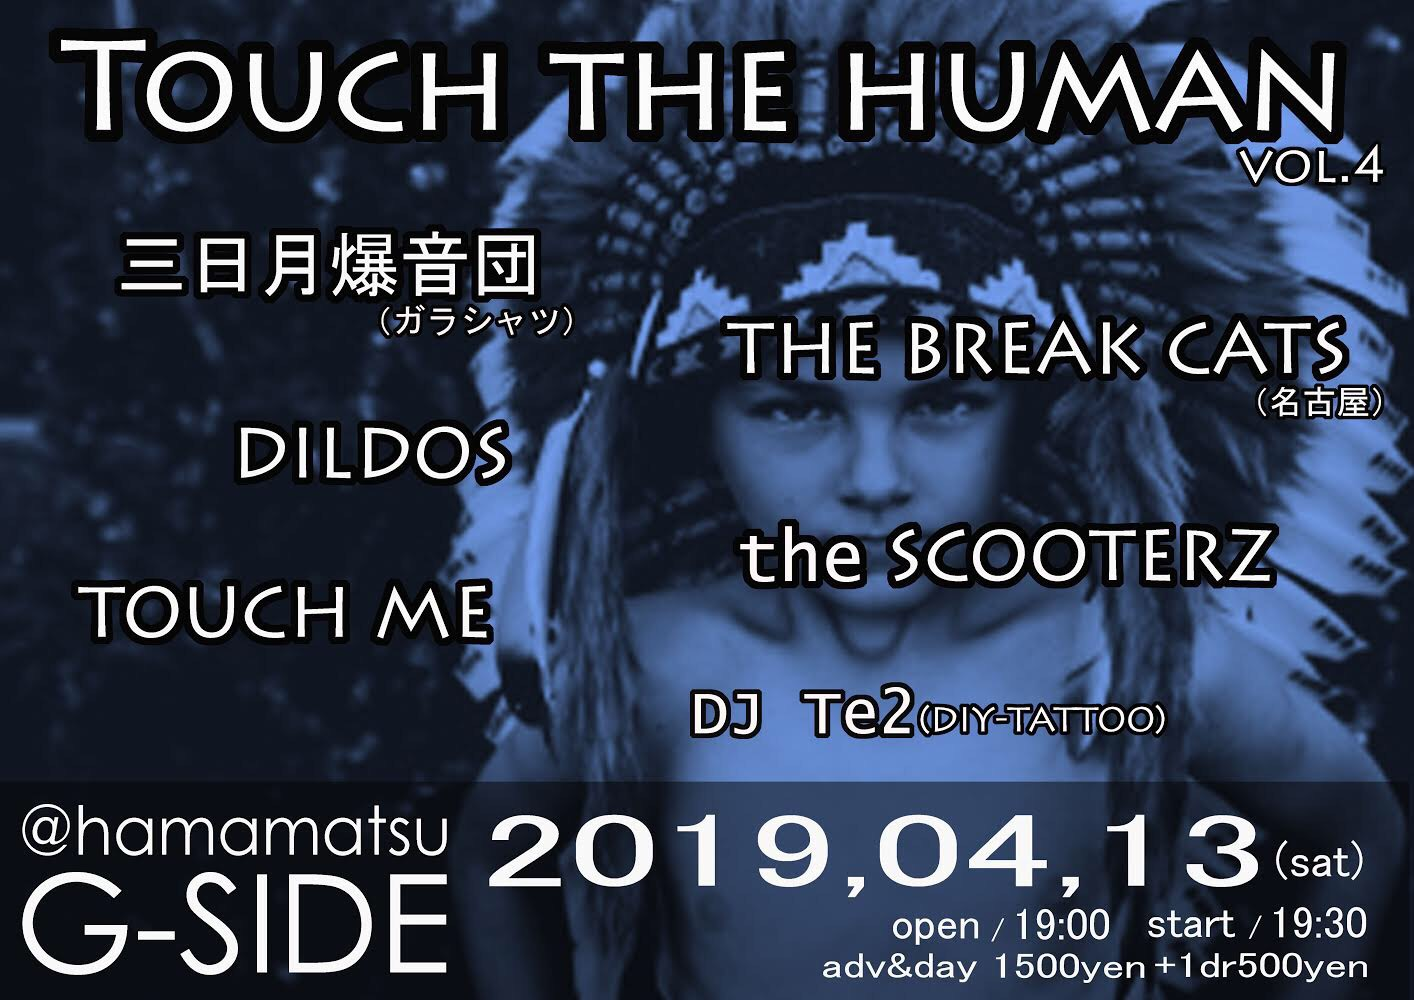 TOUCH THE HUMAN vol.4